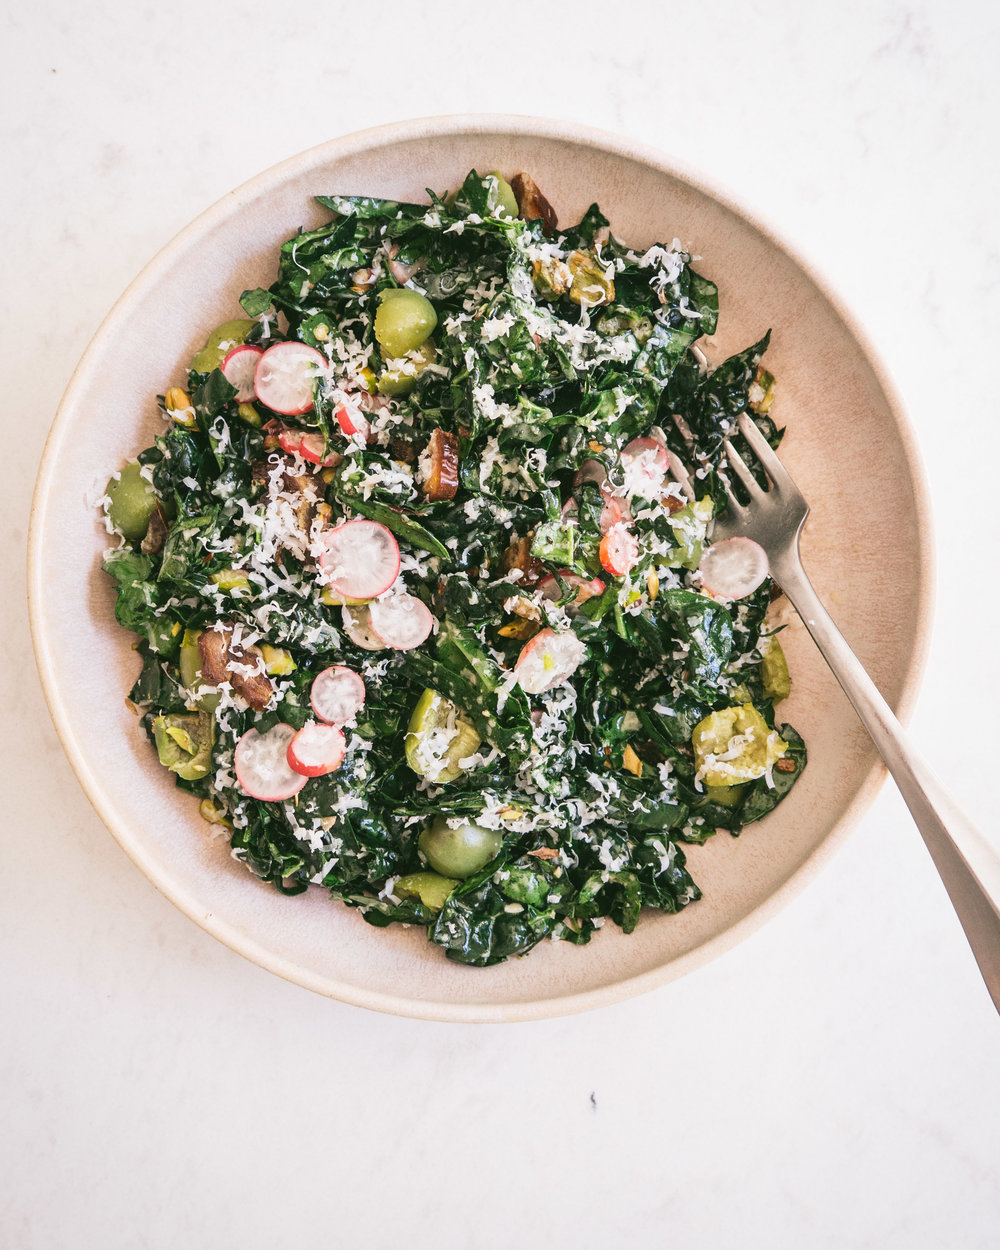 Clean Out the Fridge Kale Salad